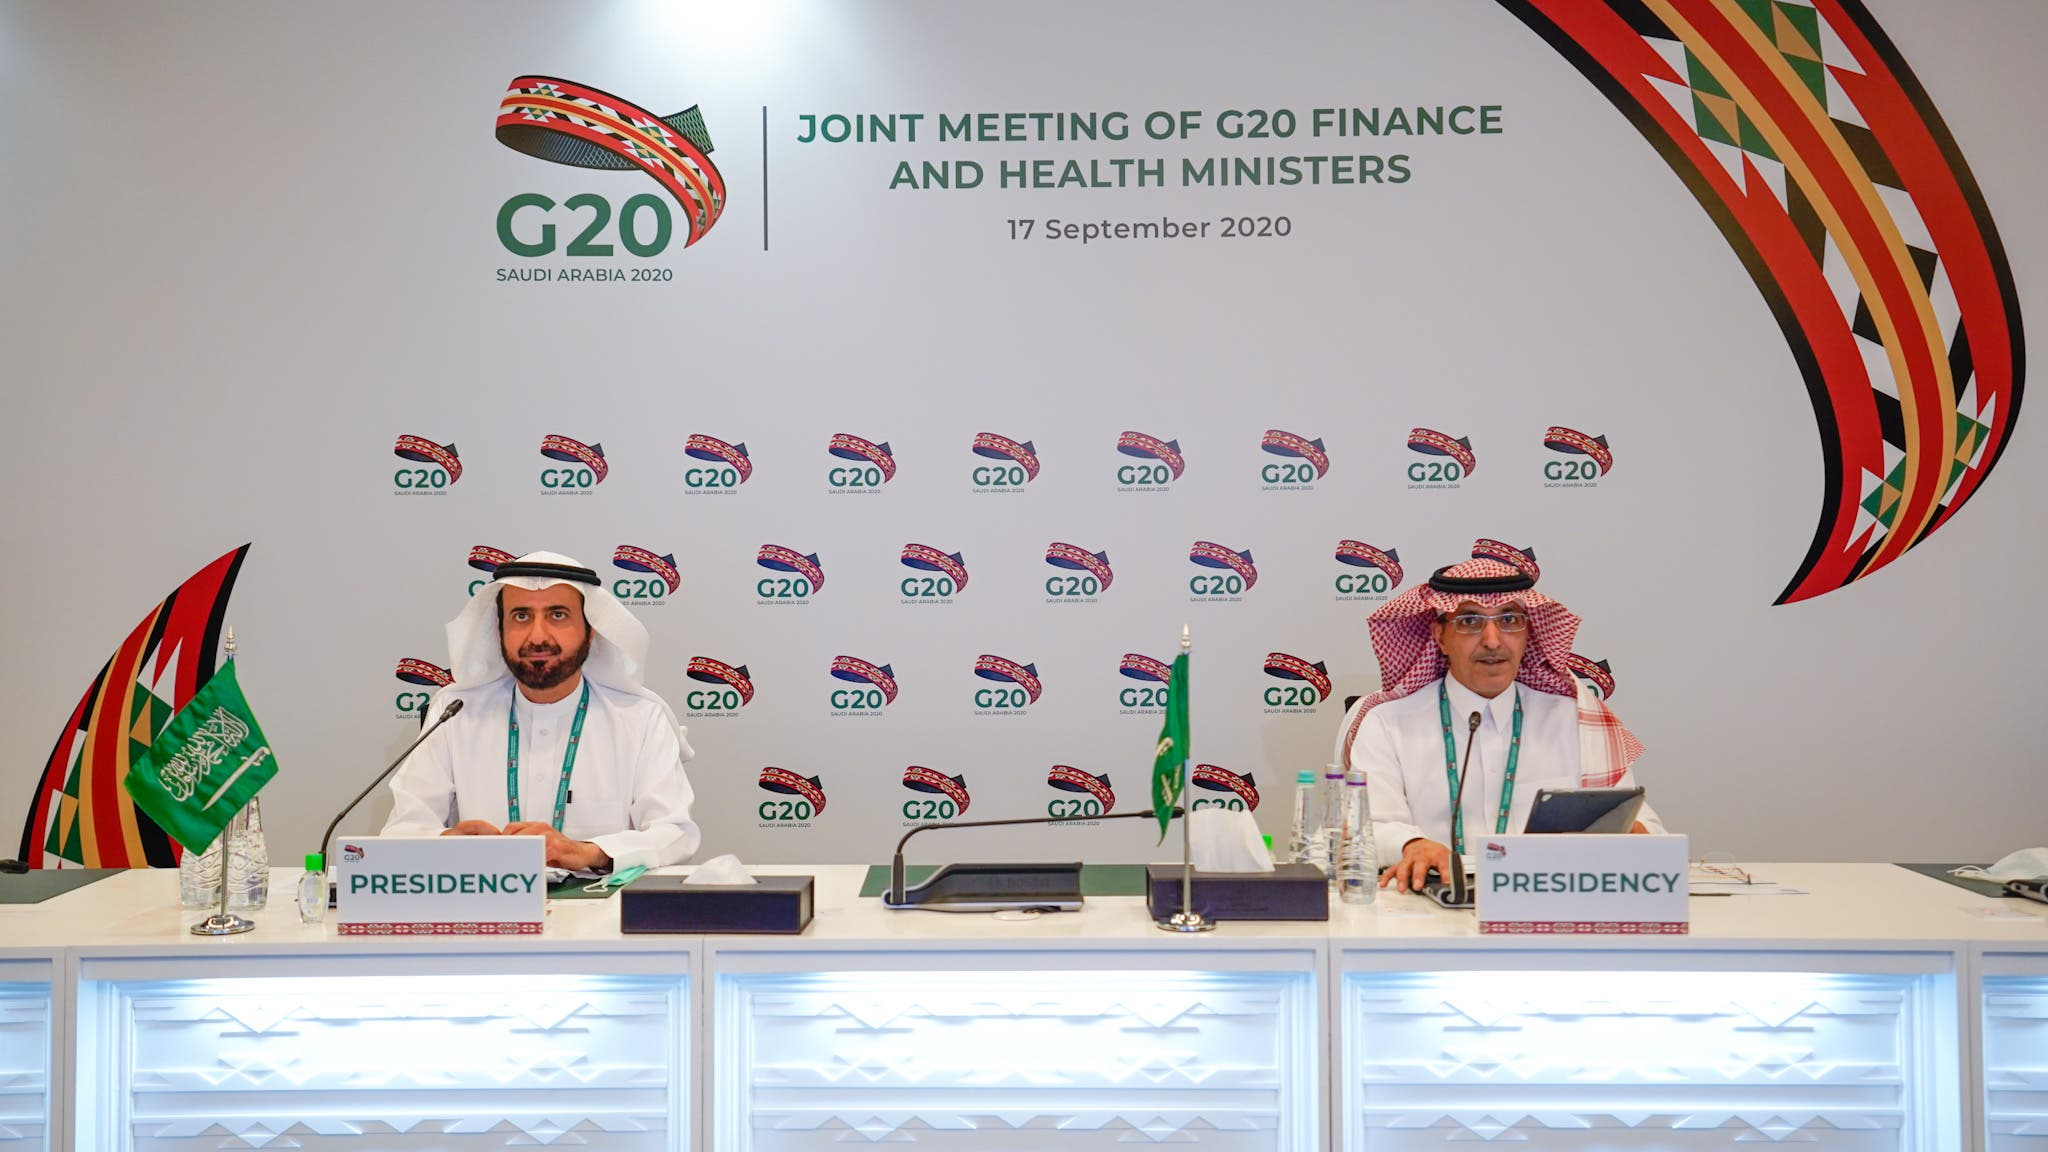 Saudi Arabia's finance and health ministers at the G20 Riyadh summit. (G20riyadhsummit.org)